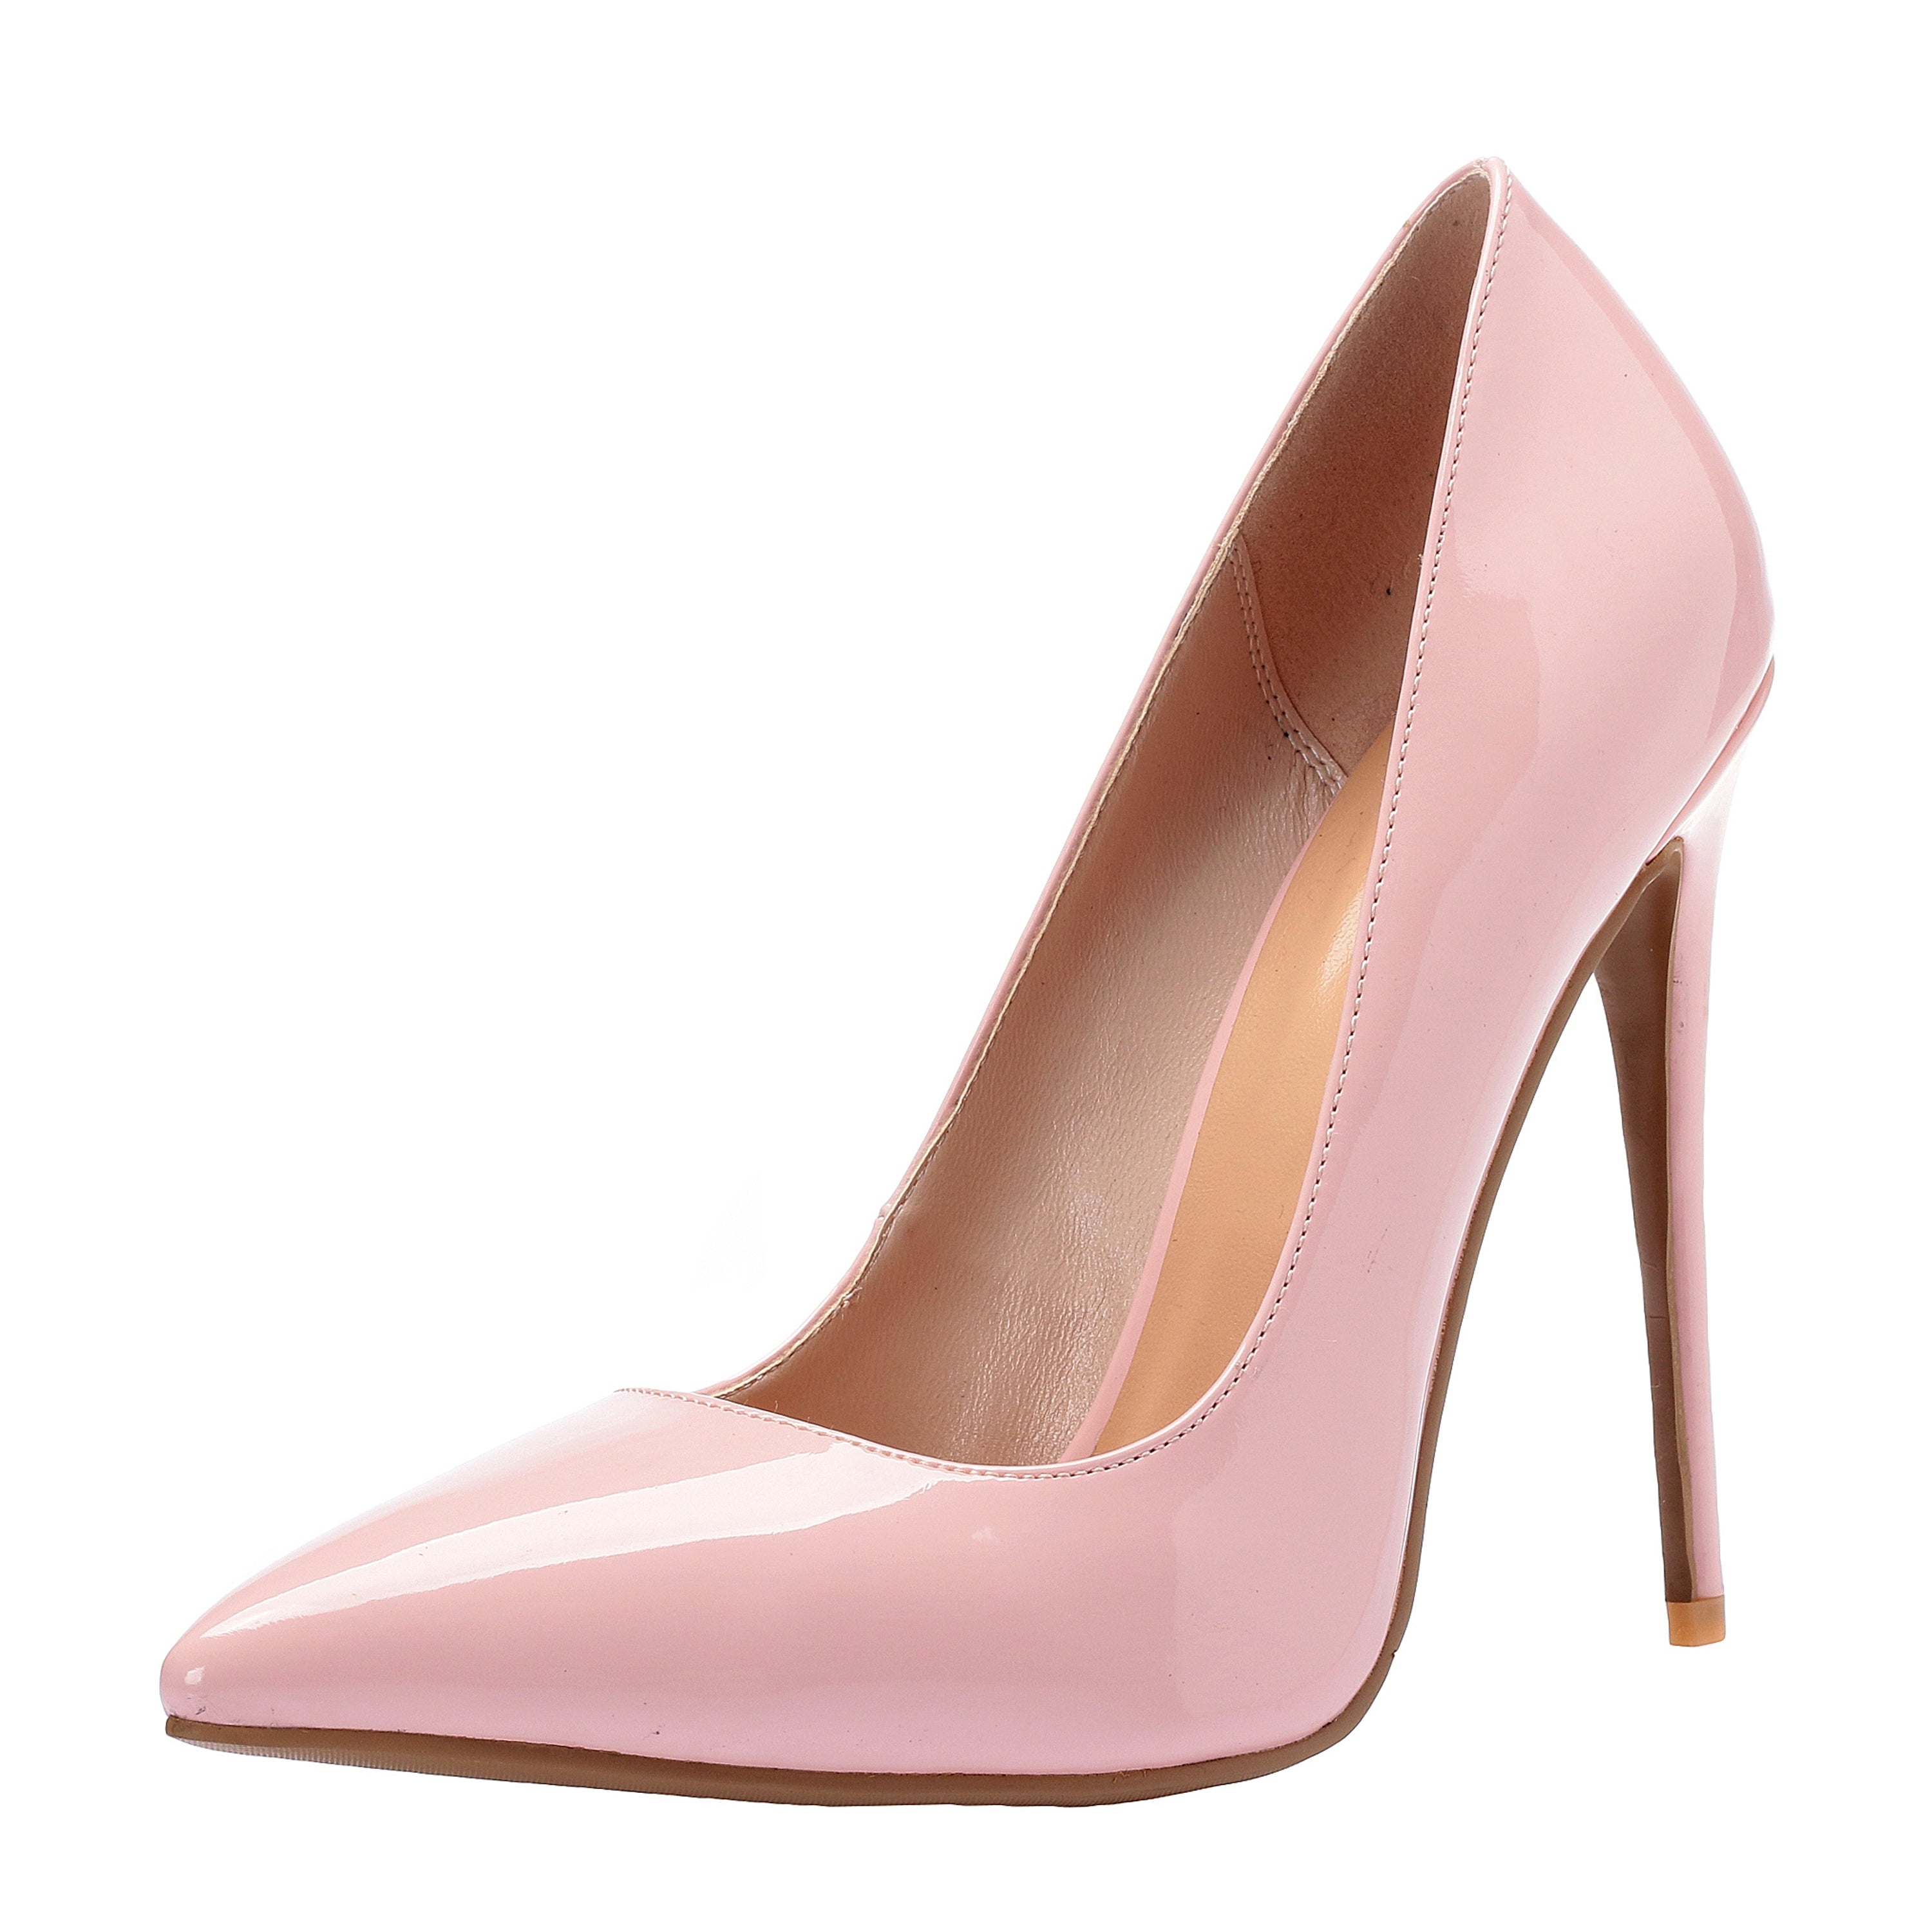 ZAPROMA Women s Pink Patent Synthetic 4.5 Inches High Heels Shoes Dress  Pumps 3269e529f4